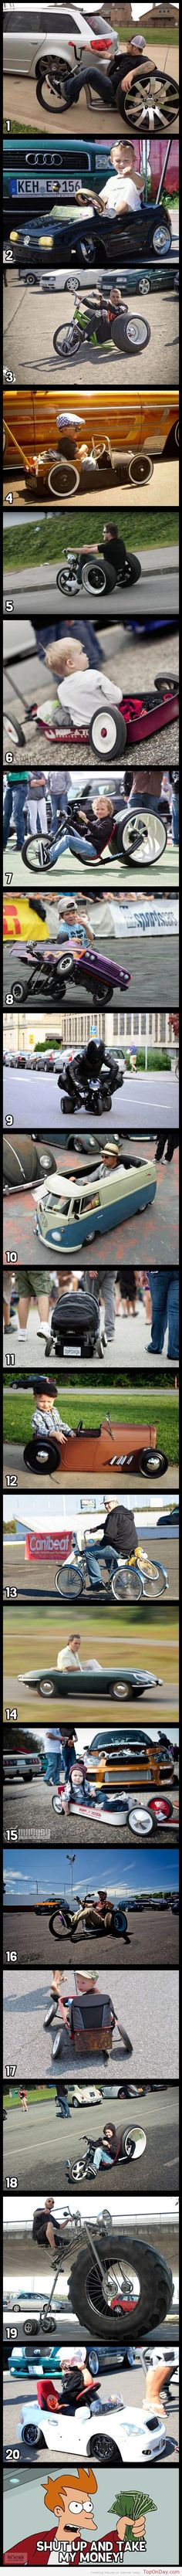 These are awesome!!! Lol I want my future kids to have badass wagons!!!